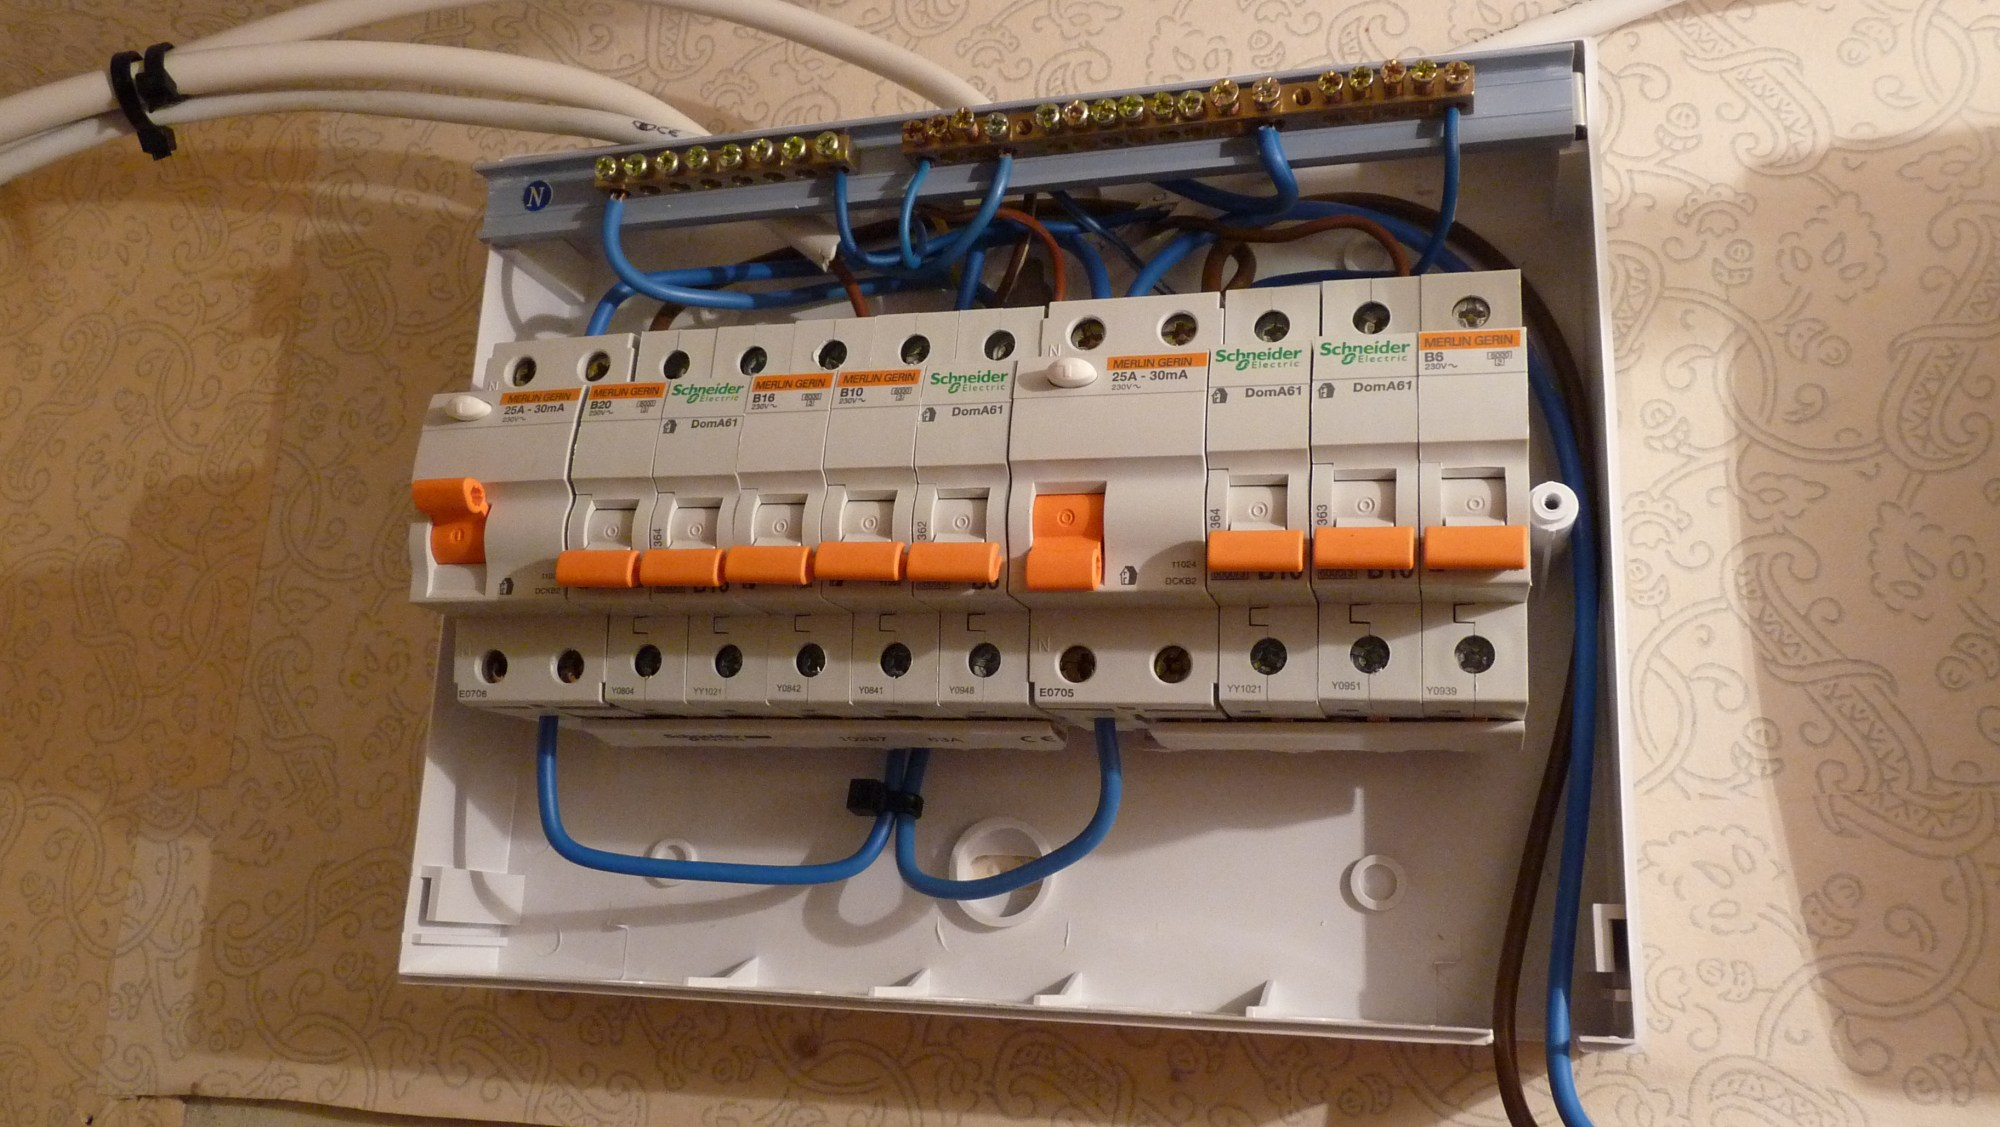 hight resolution of house fuse box wiring wiring diagram hostfuse box wiring wiring diagram expert house fuse box wiring